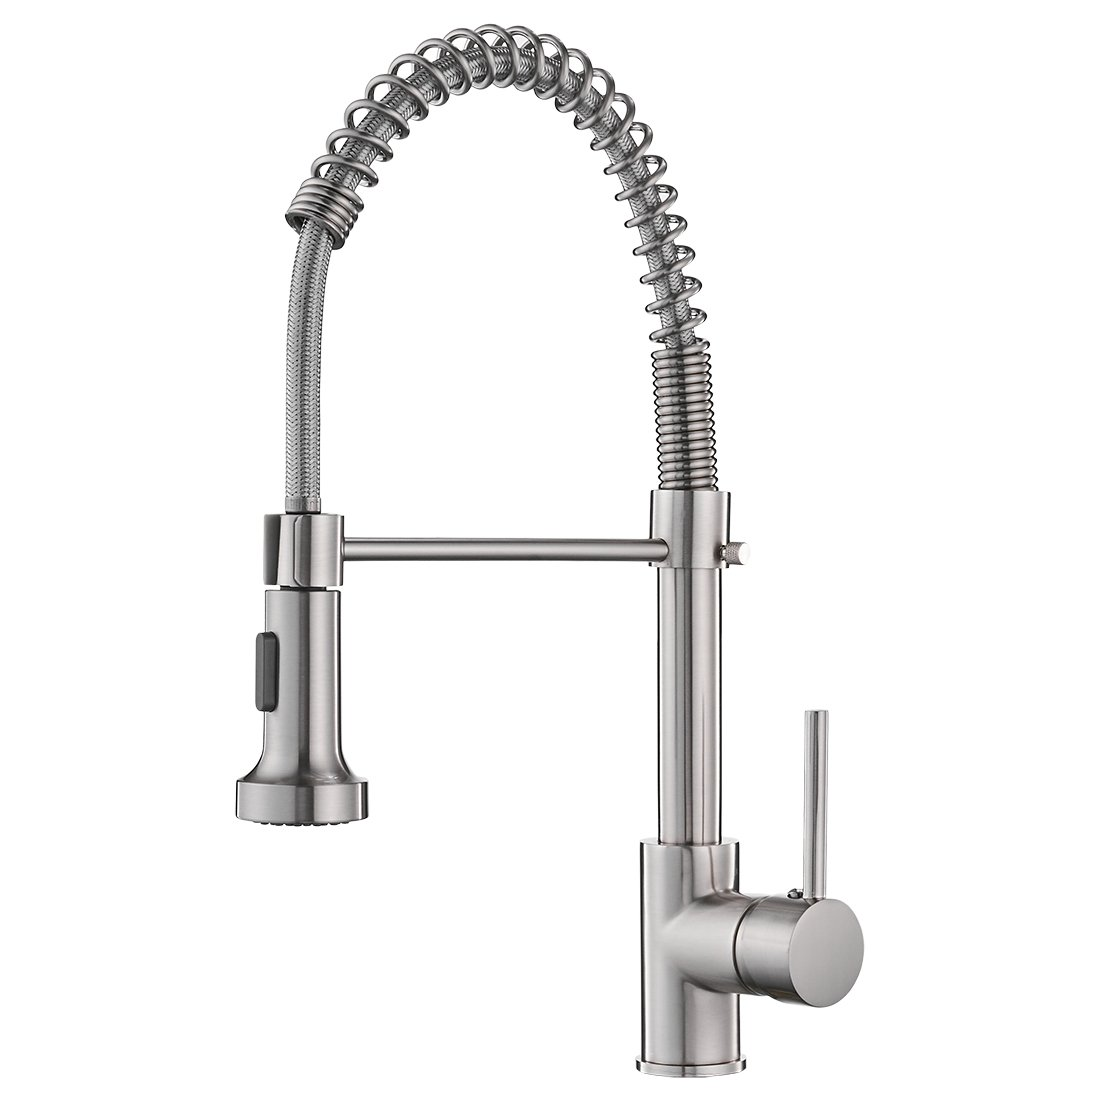 OWOFAN Commerical Spring Brushed Nickel Pre Rinse Pull Down Sprayer Single Handle Kitchen Faucet, Pull Out Kitchen Sink Faucet